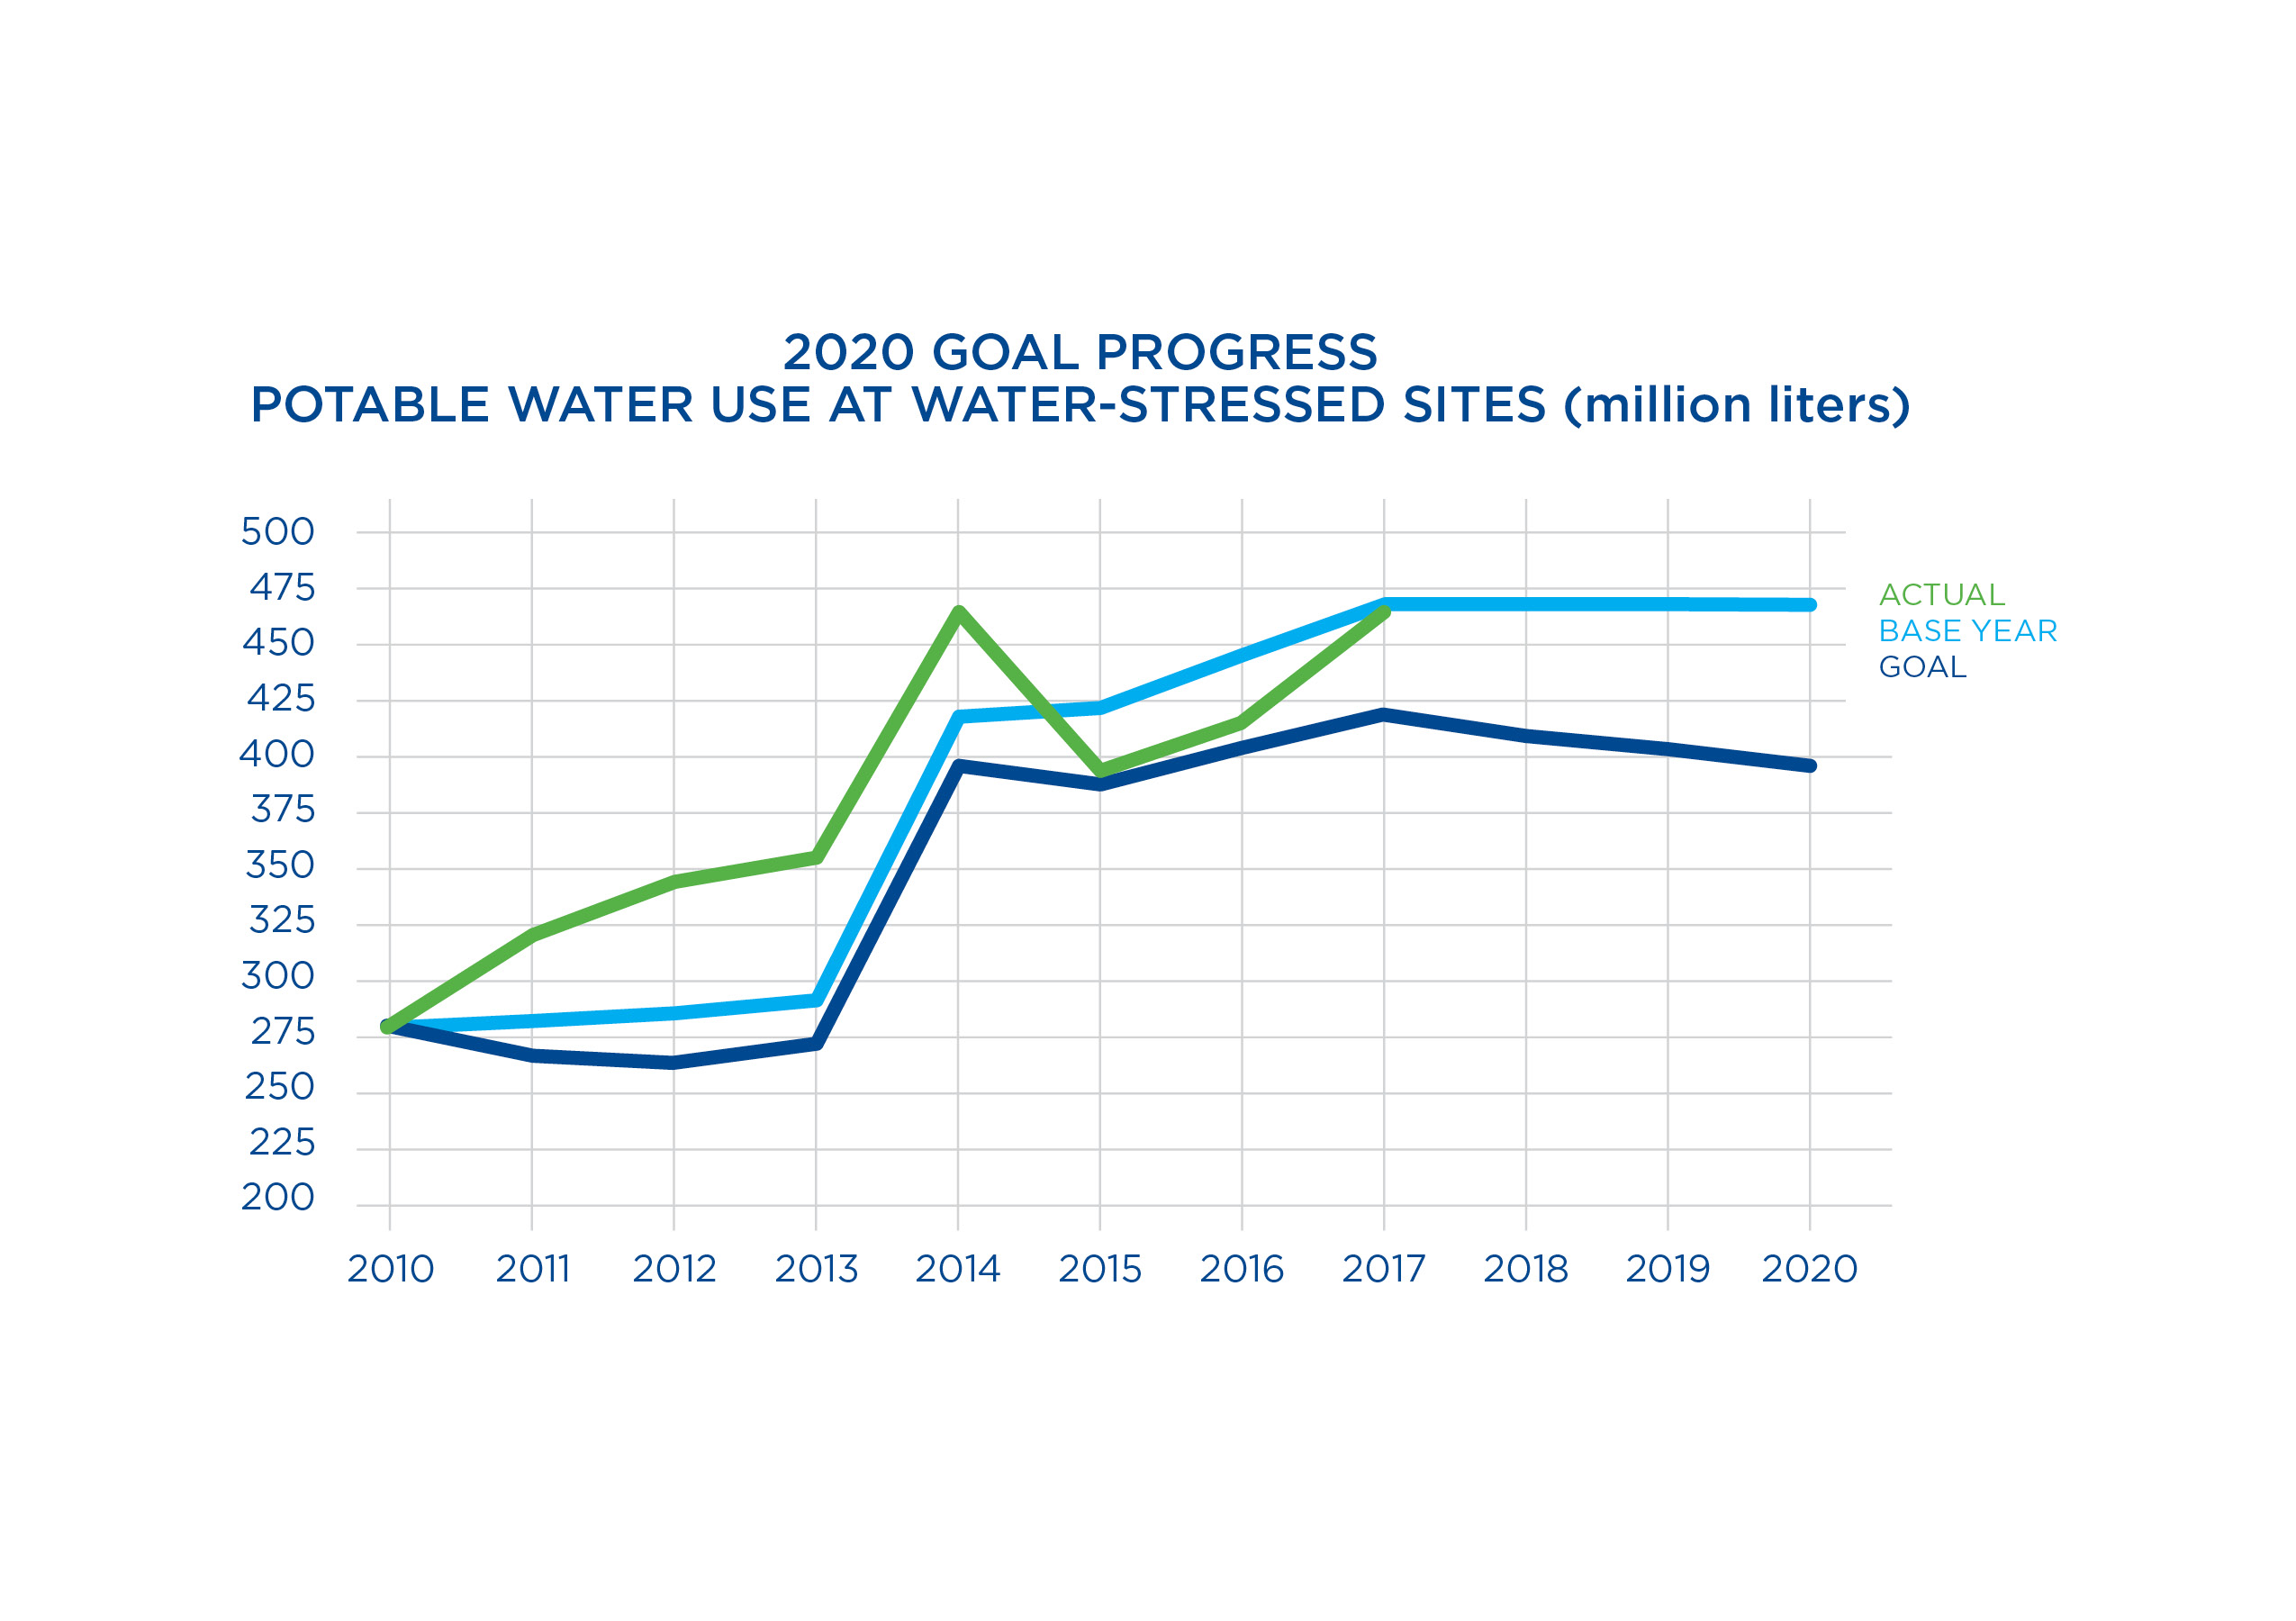 Chart of 2020 goal progress for potable water use at water-stressed sites